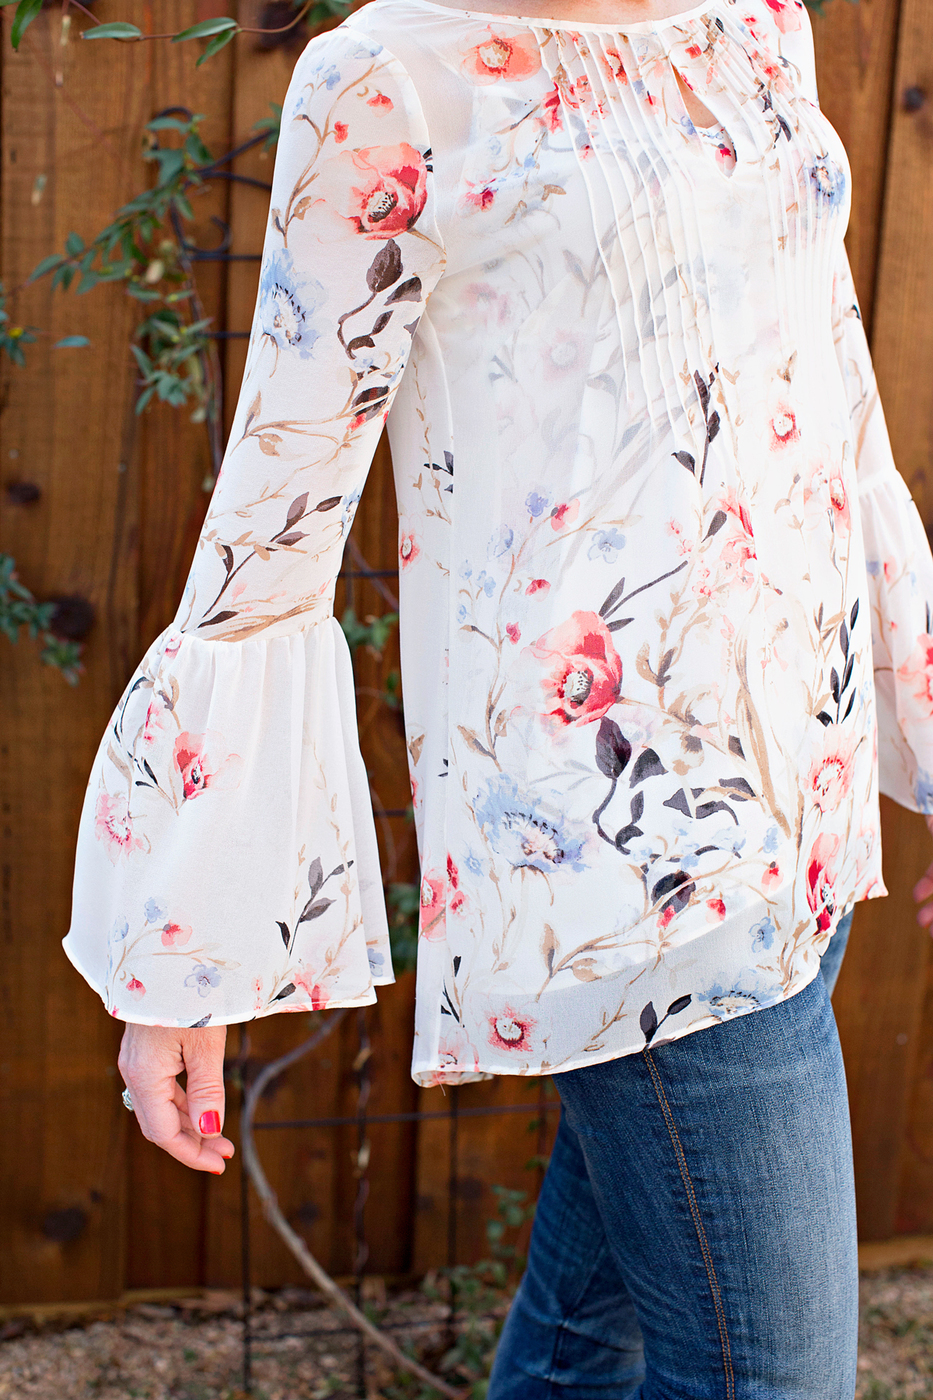 floral tops for spring, bell sleeve top, spring floral top, white house black market floral top, gauzy floral top